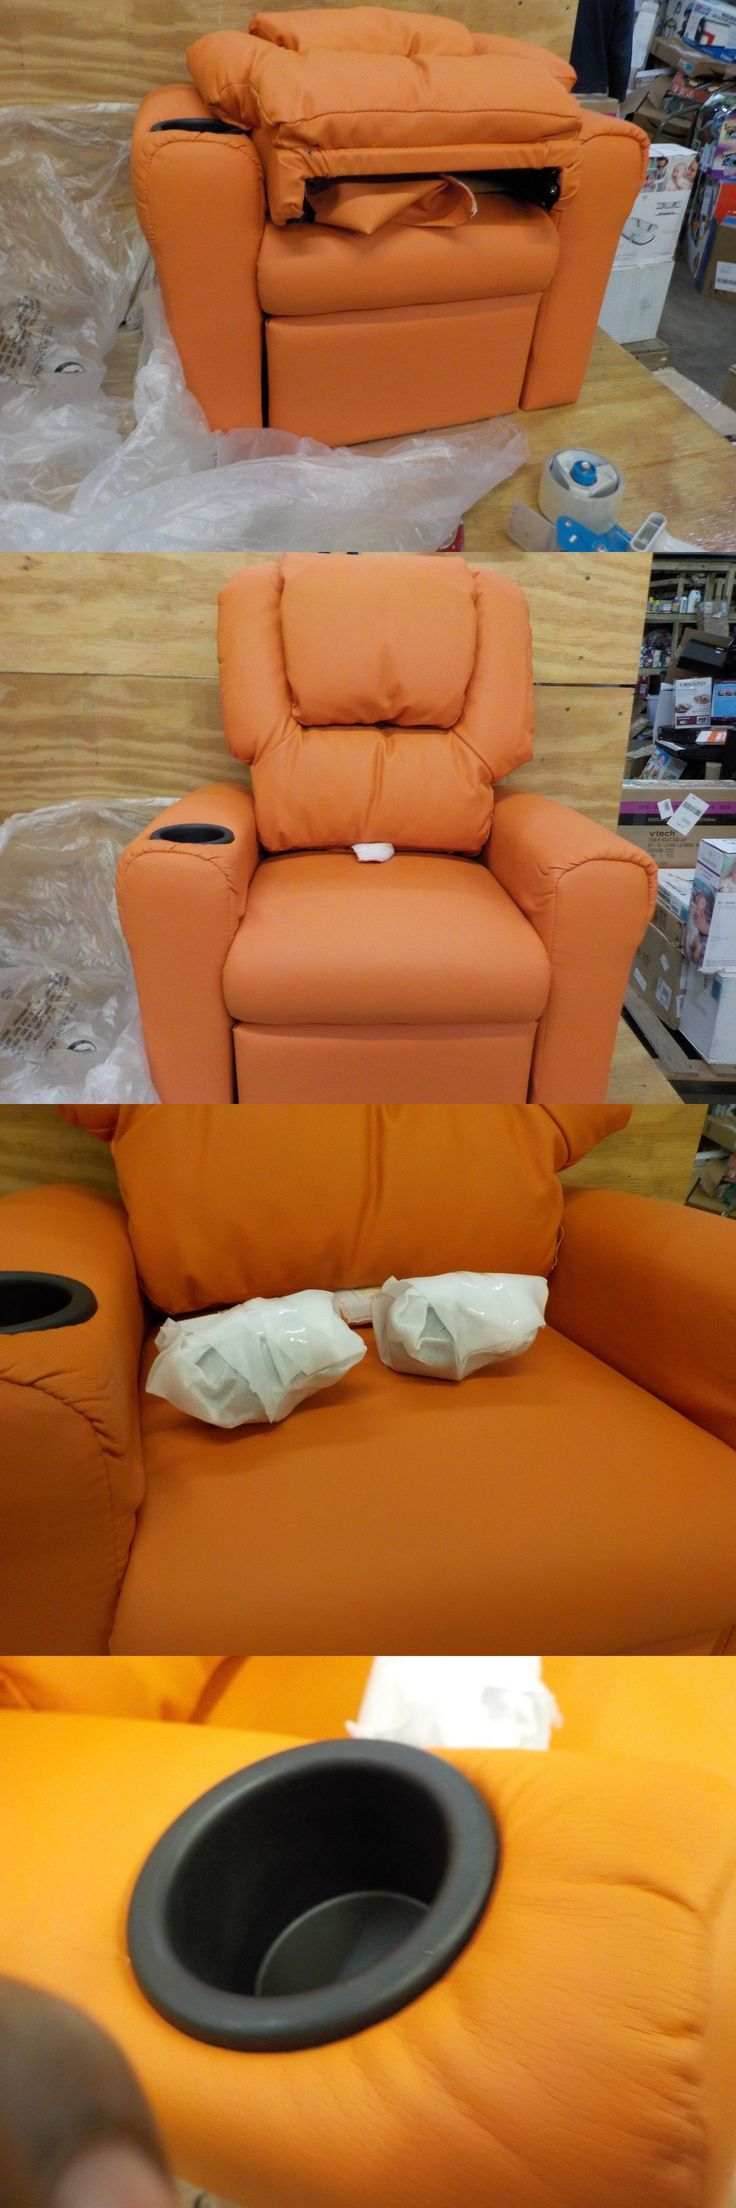 Sofas and Armchairs 134648: Flash Furniture Contemporary Orange Vinyl Kids Recliner With Cup Holder And Head -> BUY IT NOW ONLY: $89.99 on eBay!